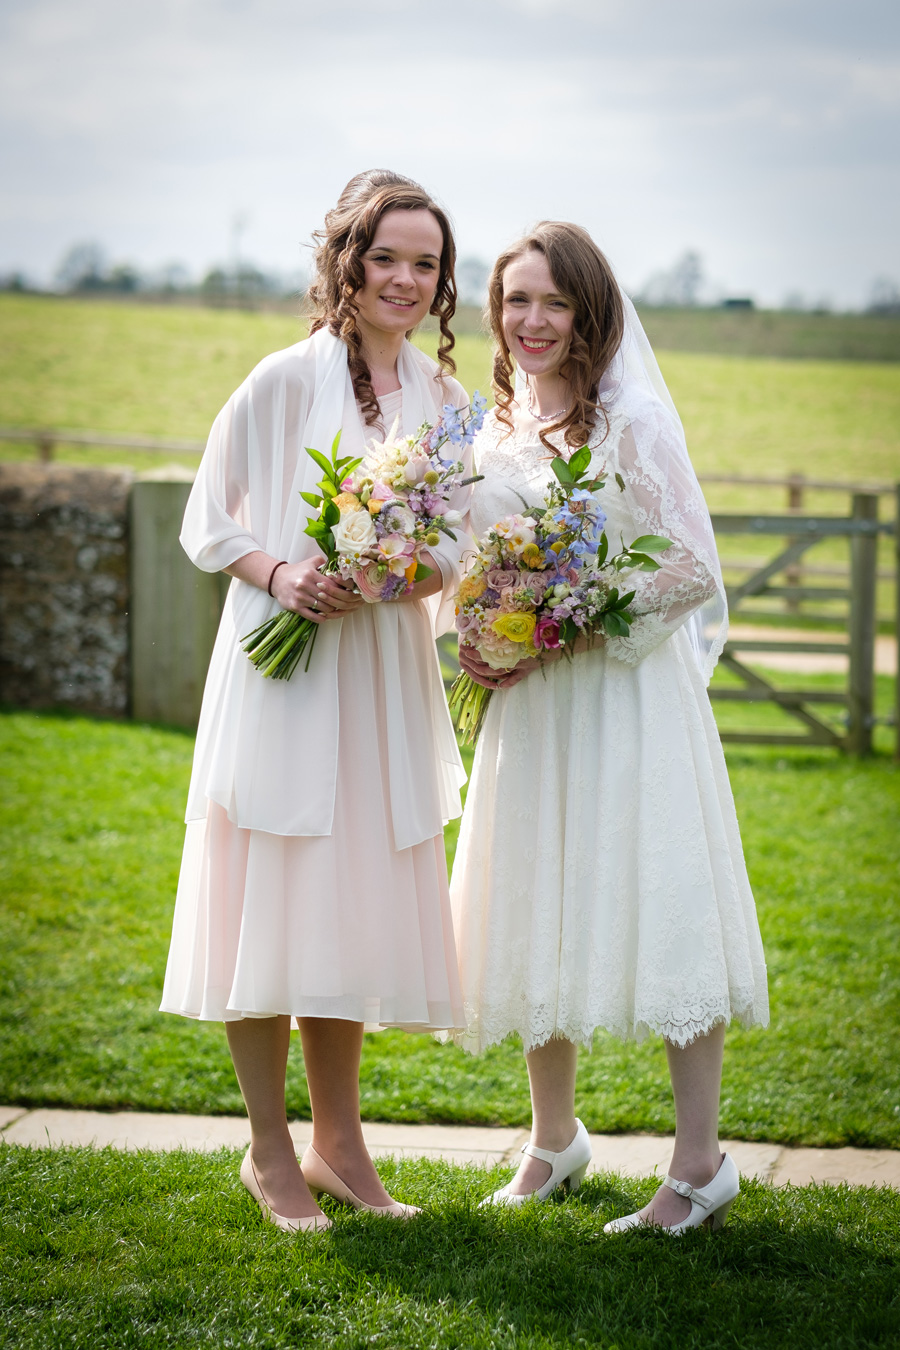 Dodford Manor Country Barn wedding blog, images © Brillpix Photography (24)